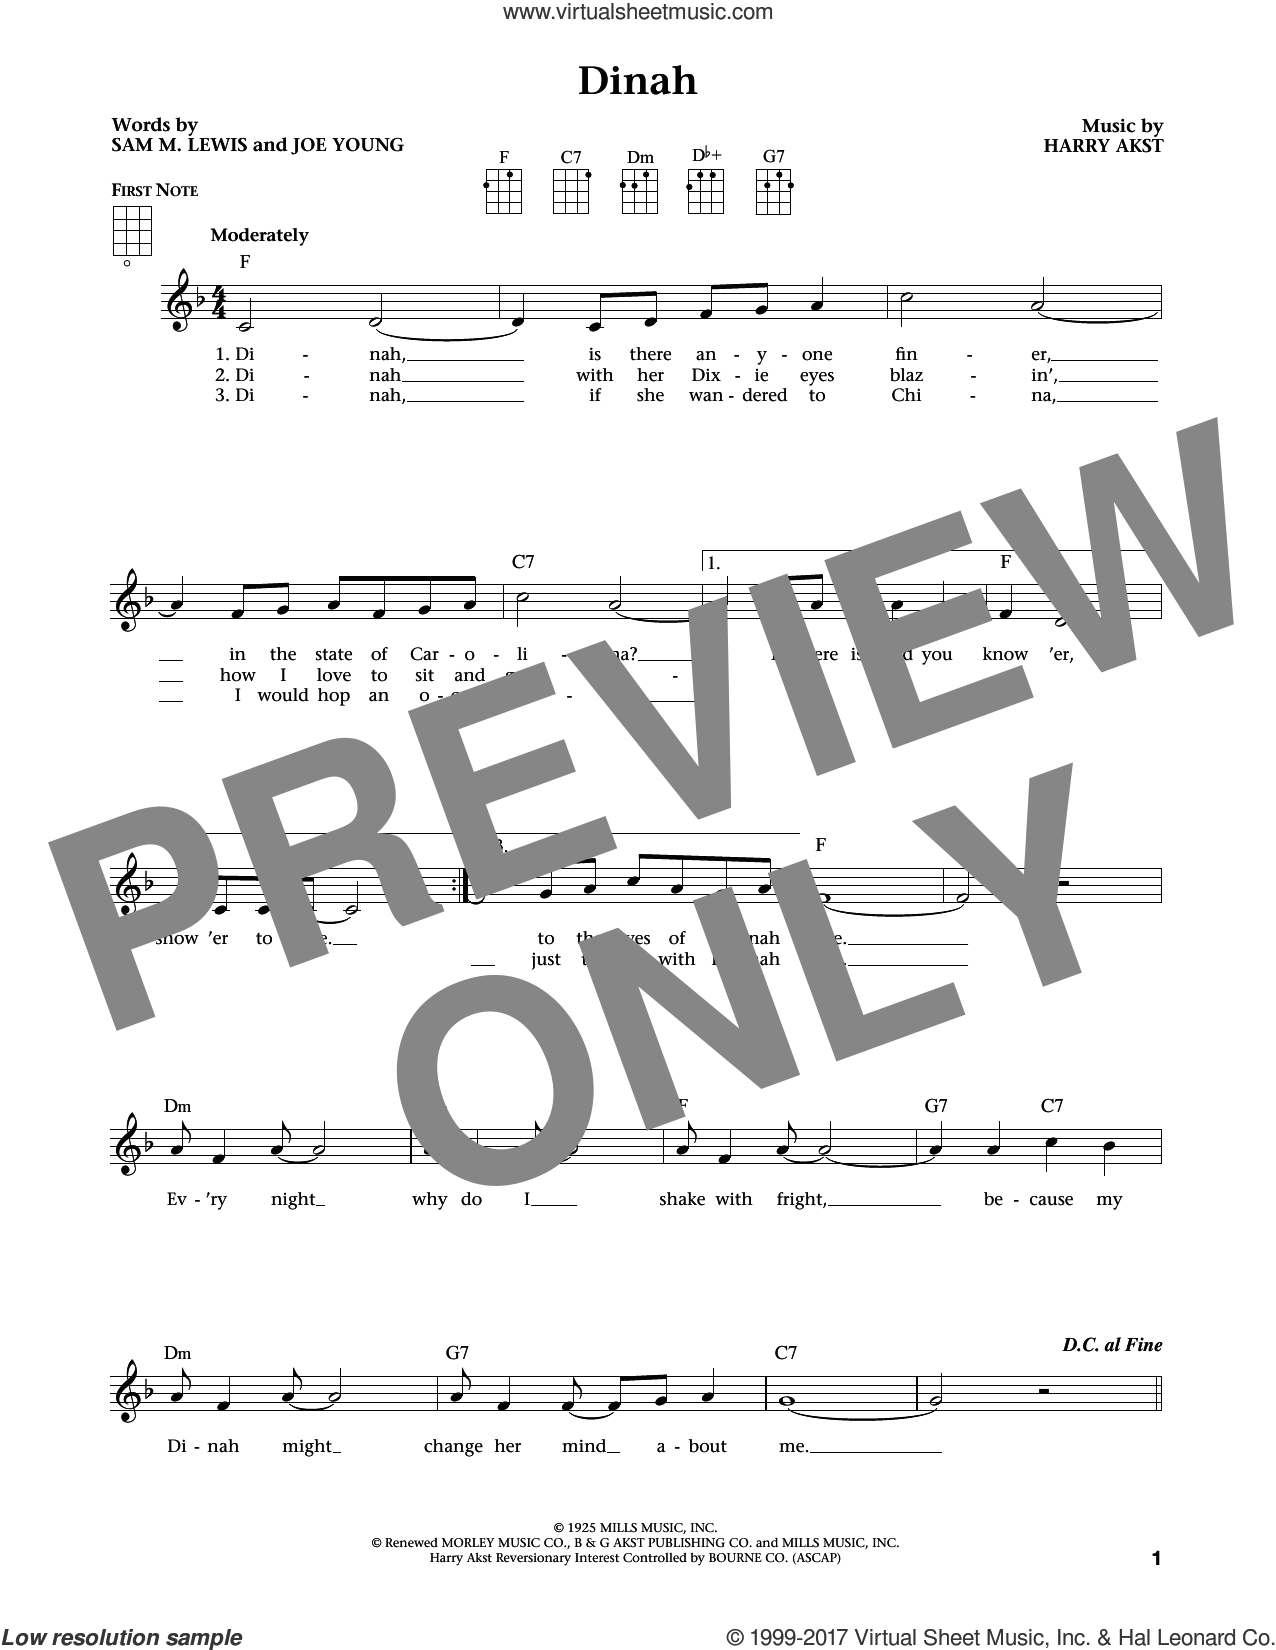 Dinah (from The Daily Ukulele) (arr. Liz and Jim Beloff) sheet music for ukulele by Harry Akst, Jim Beloff, Liz Beloff, Joe Young and Sam Lewis, intermediate skill level